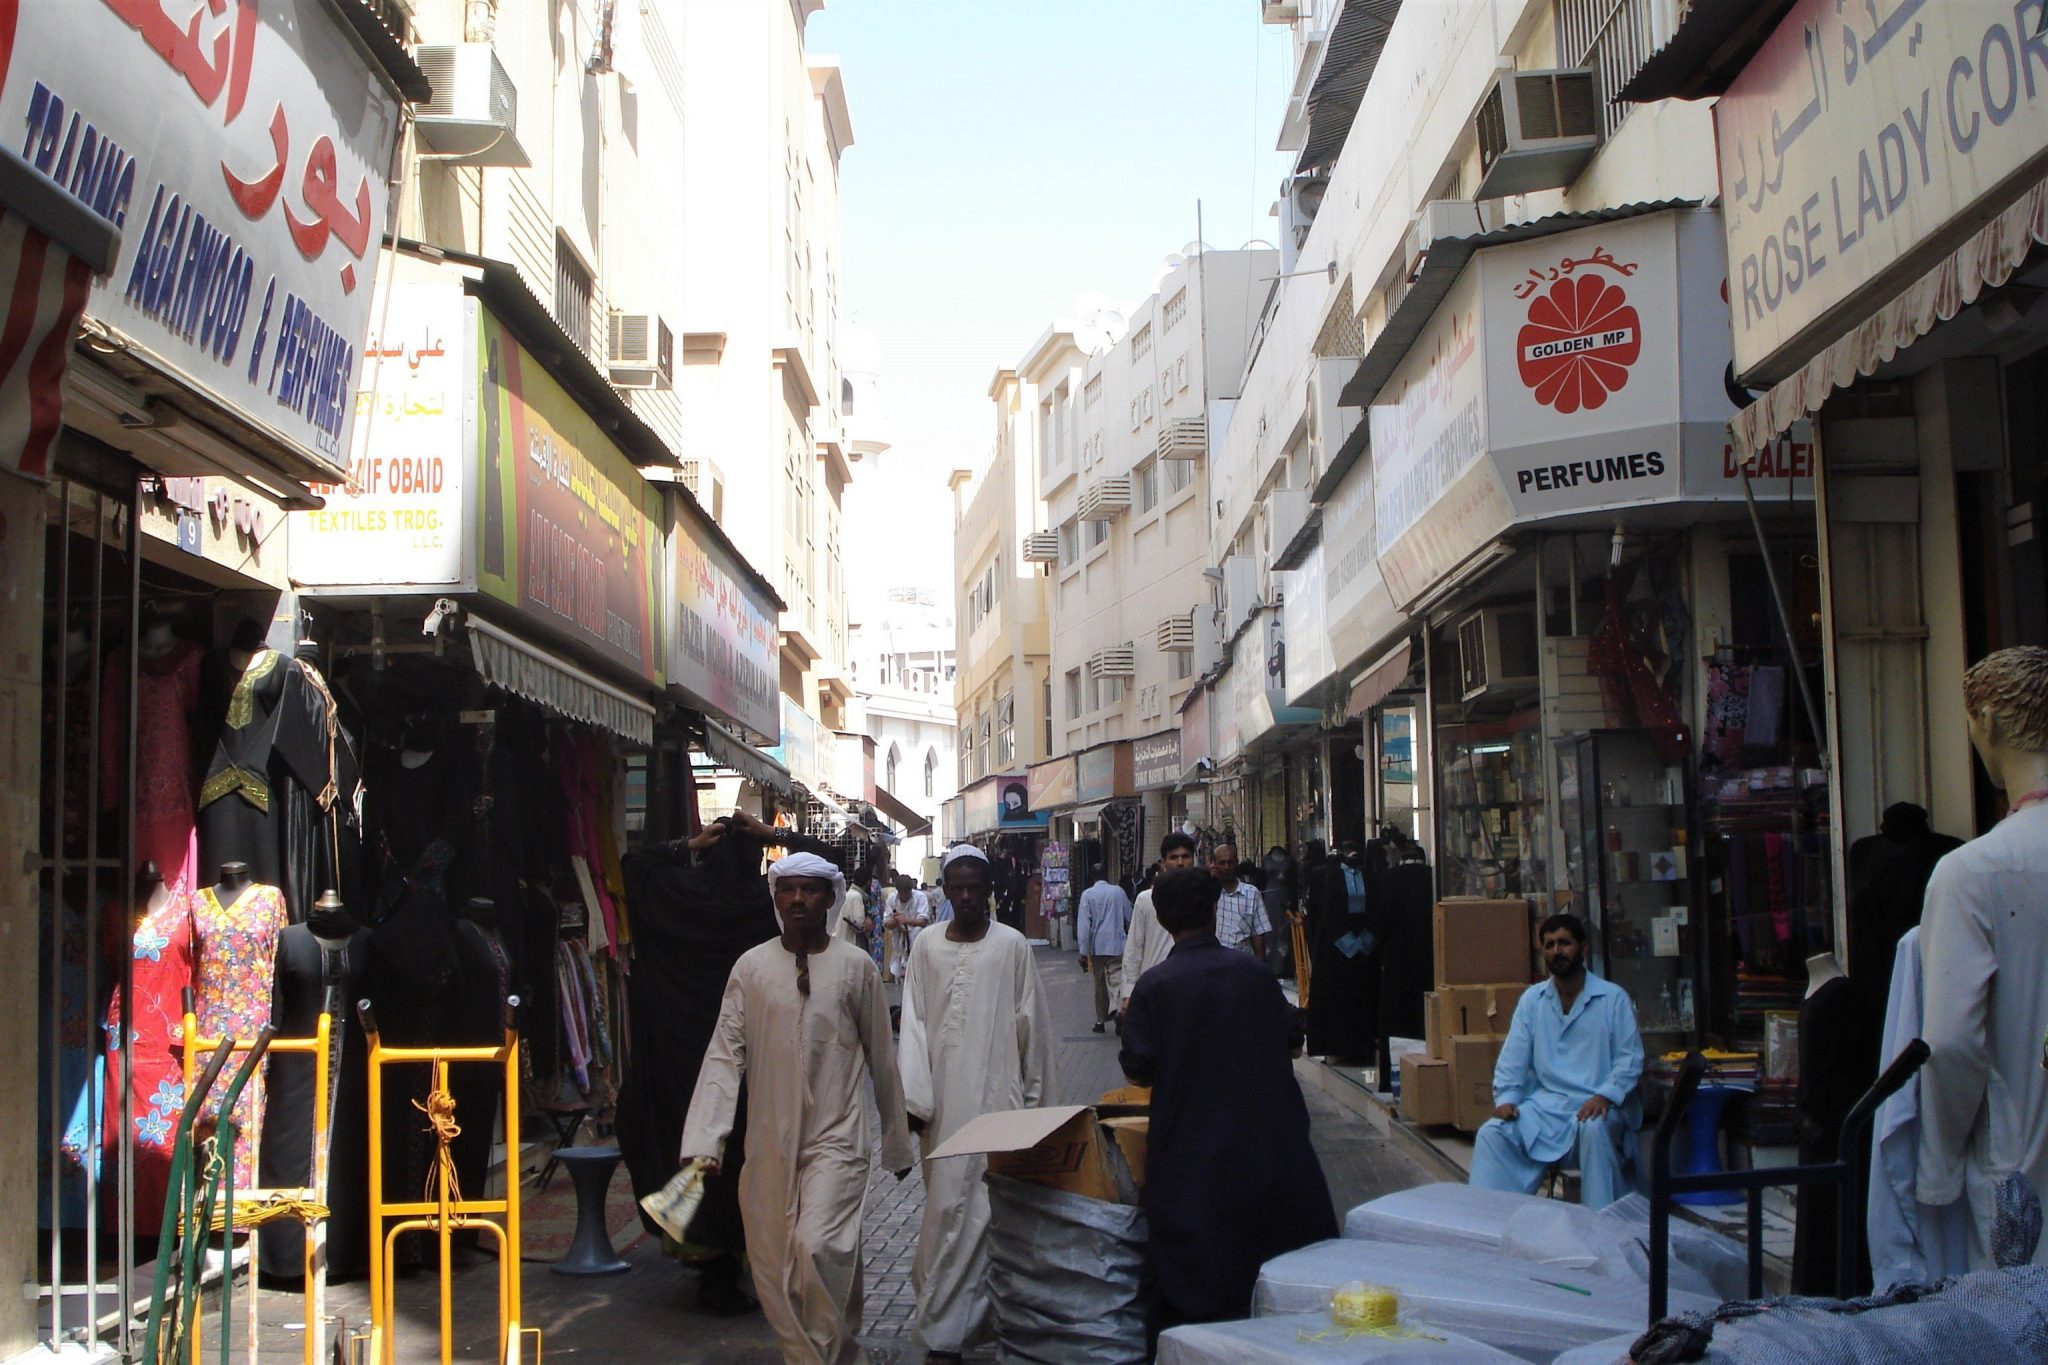 People on the narrow streets of a souq in Sharjah, United Arab Emirates